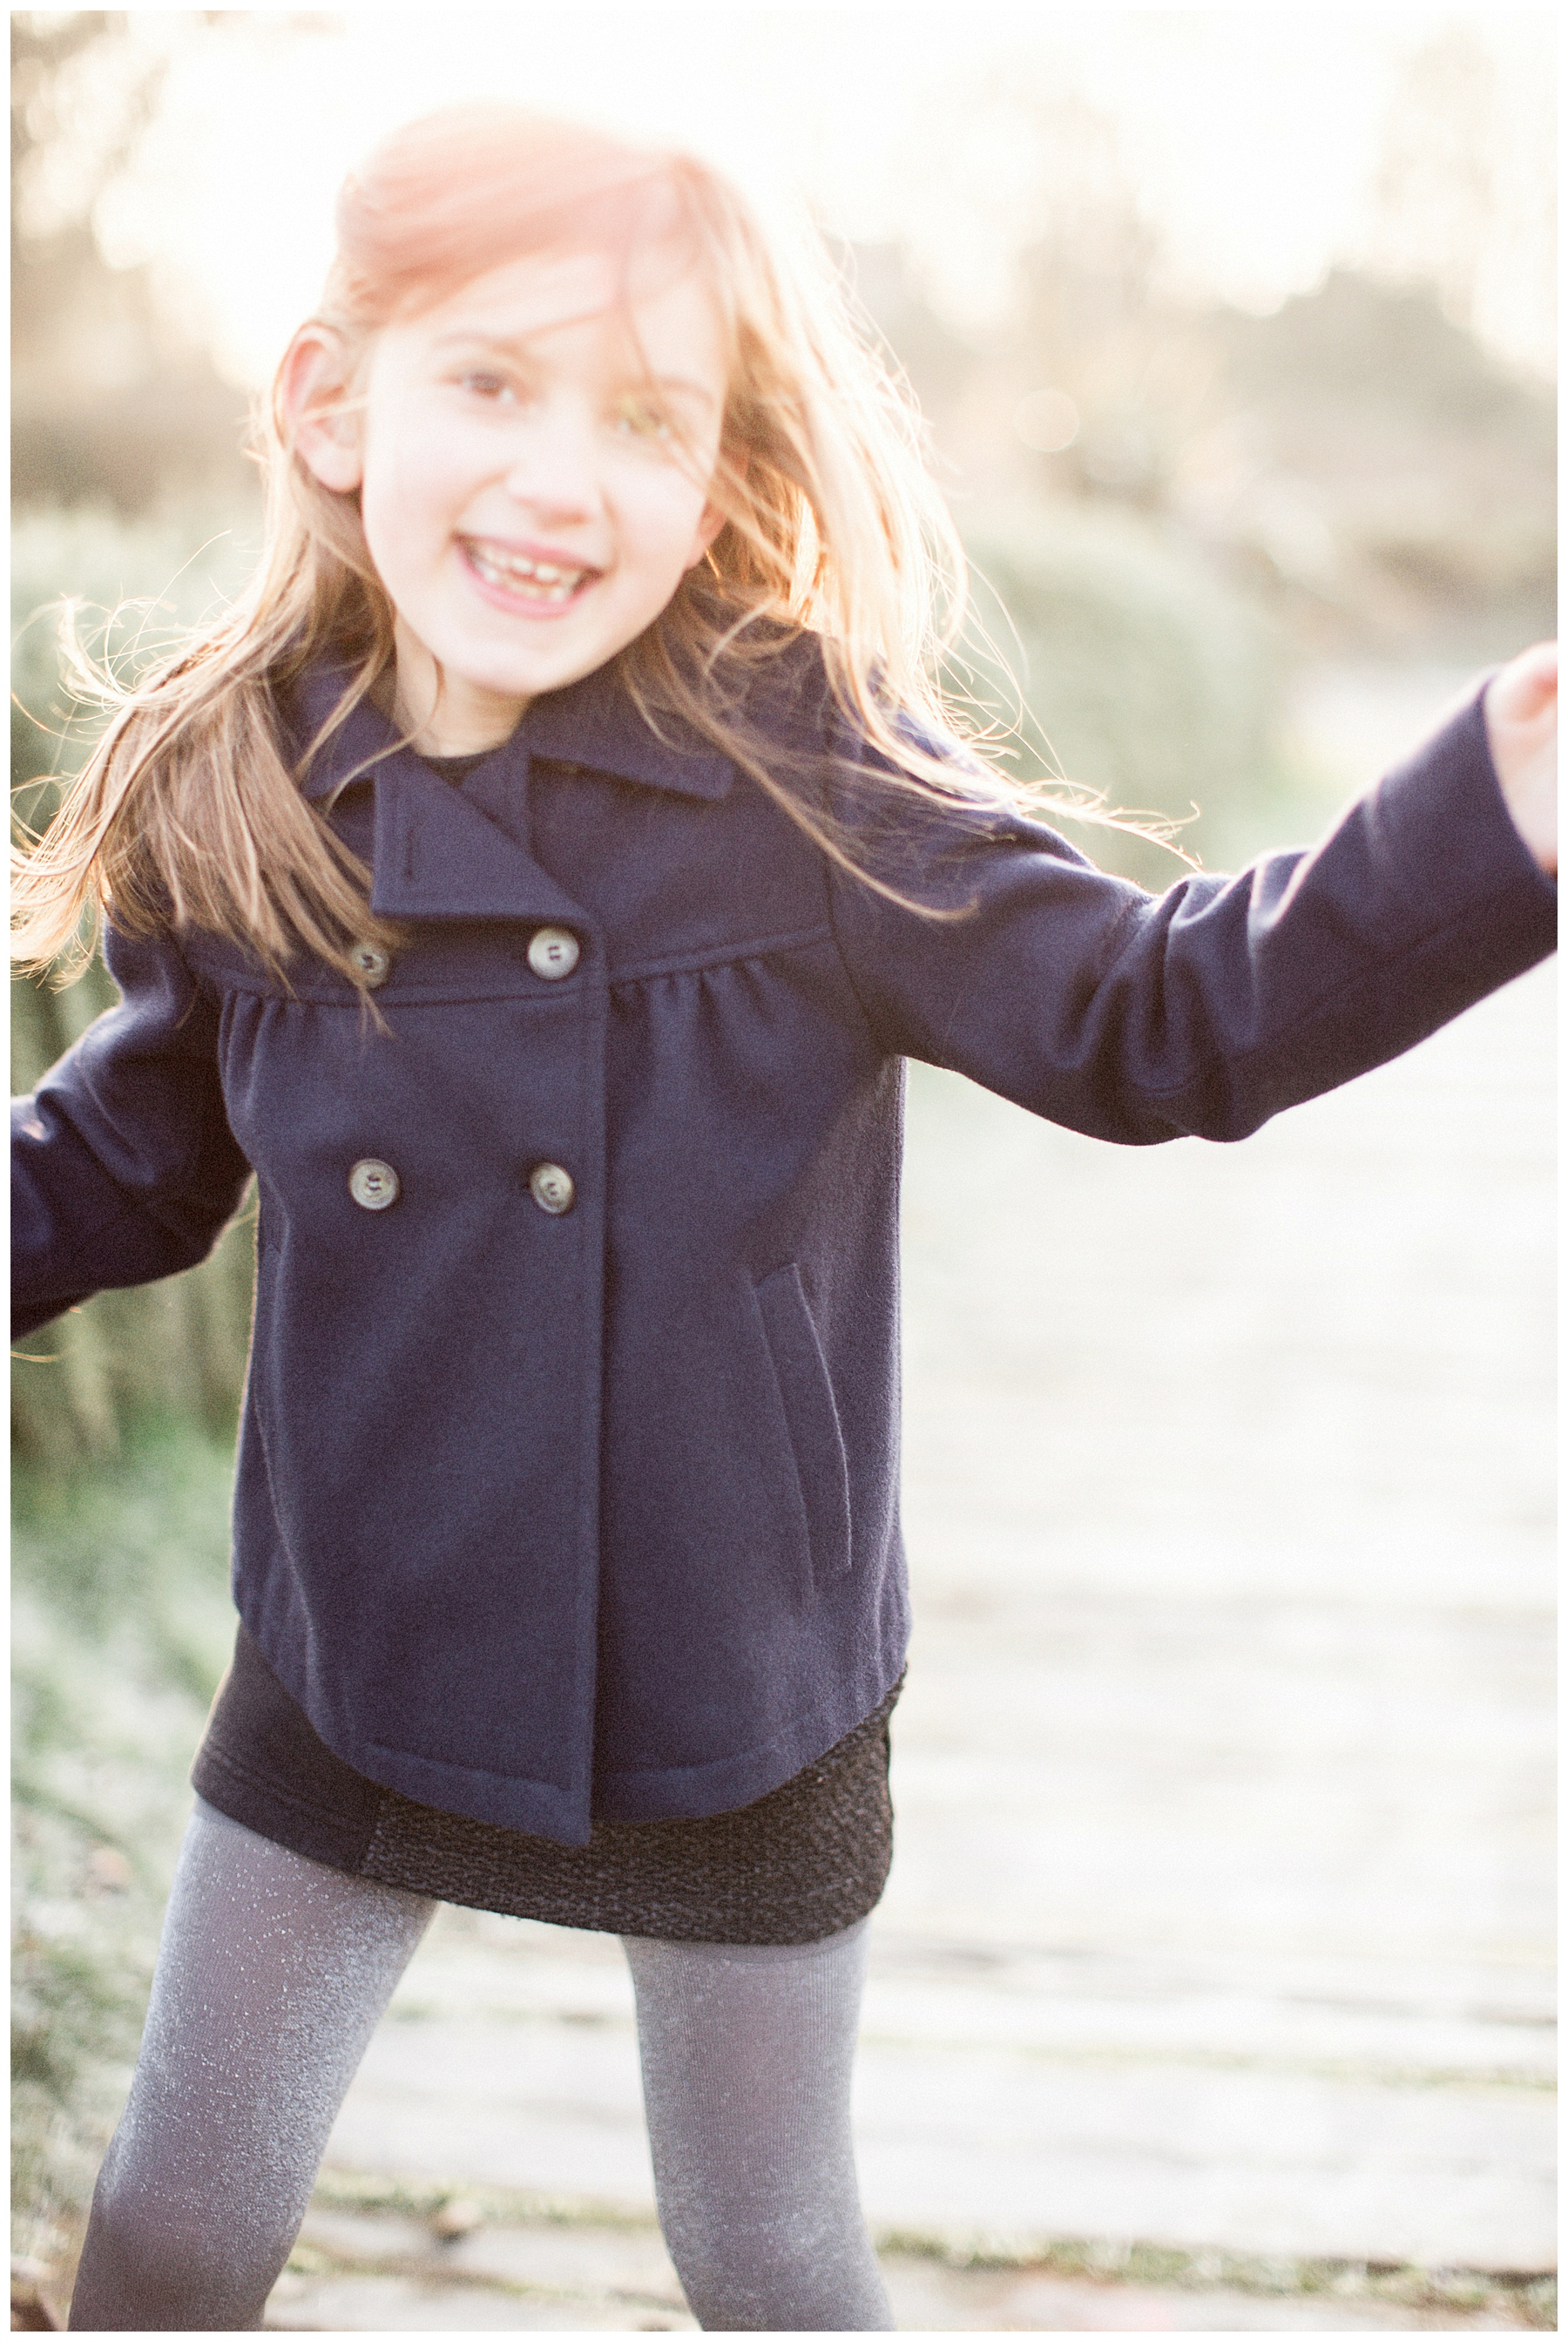 Marie-Alice G-Photographe famille valognes cherbourg manche normandie_0062